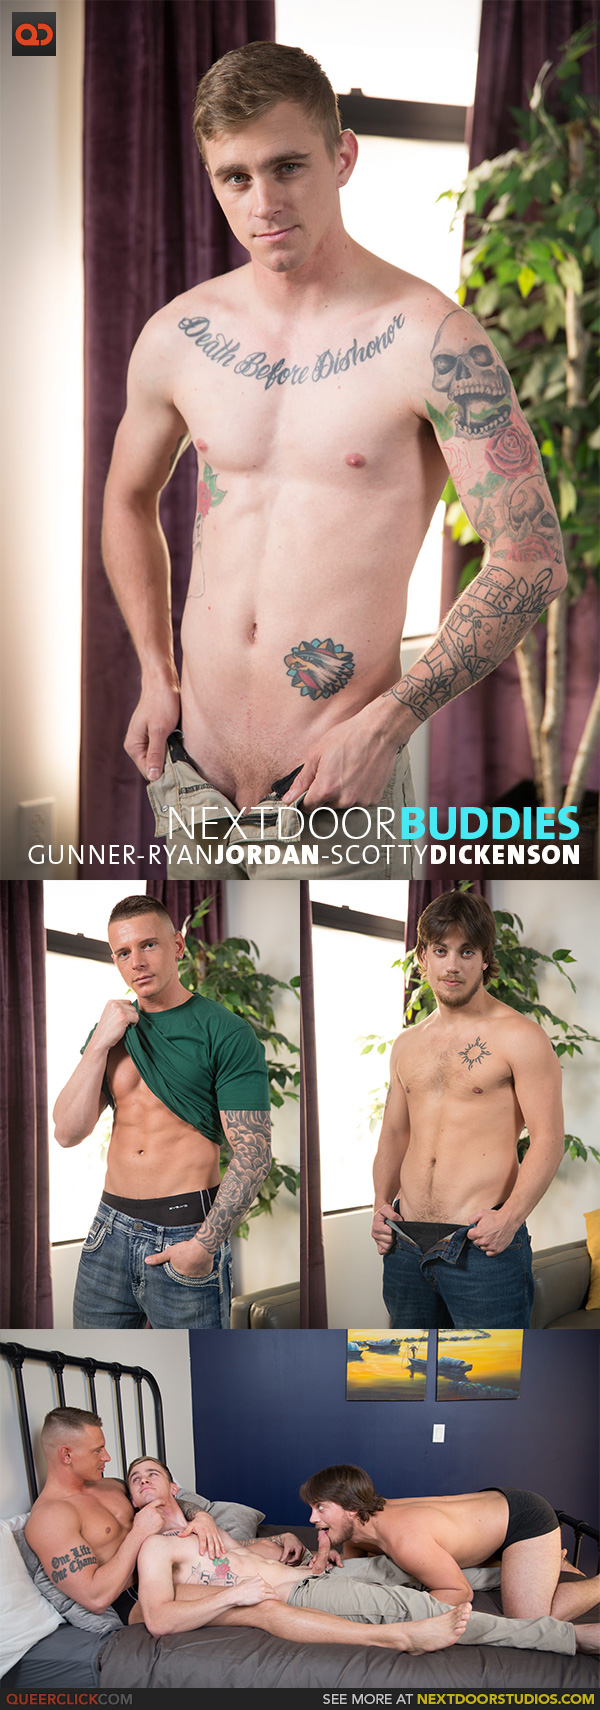 Next Door Studios:  Gunner, Ryan Jordan and Scotty Dickenson